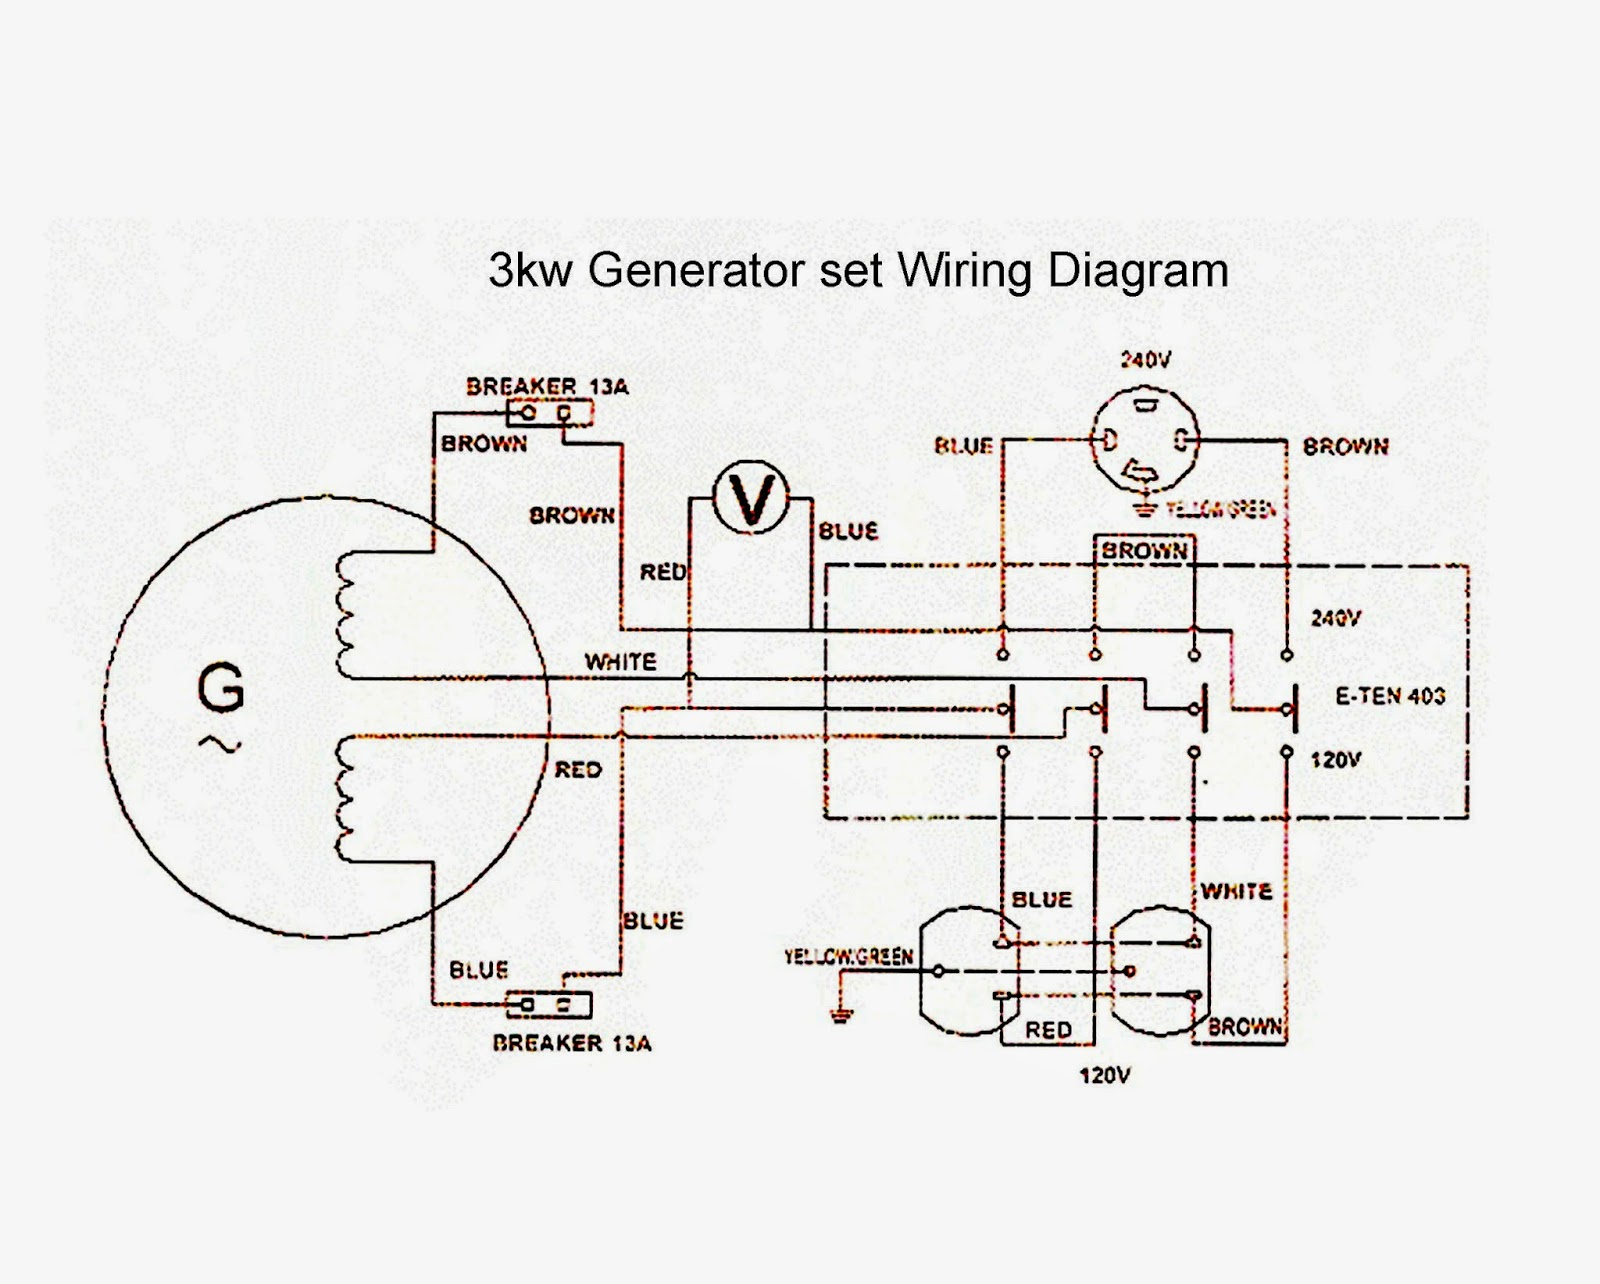 genset generators wiring diagram genset control wiring diagram july 2014 | electrical winding - wiring diagrams #1